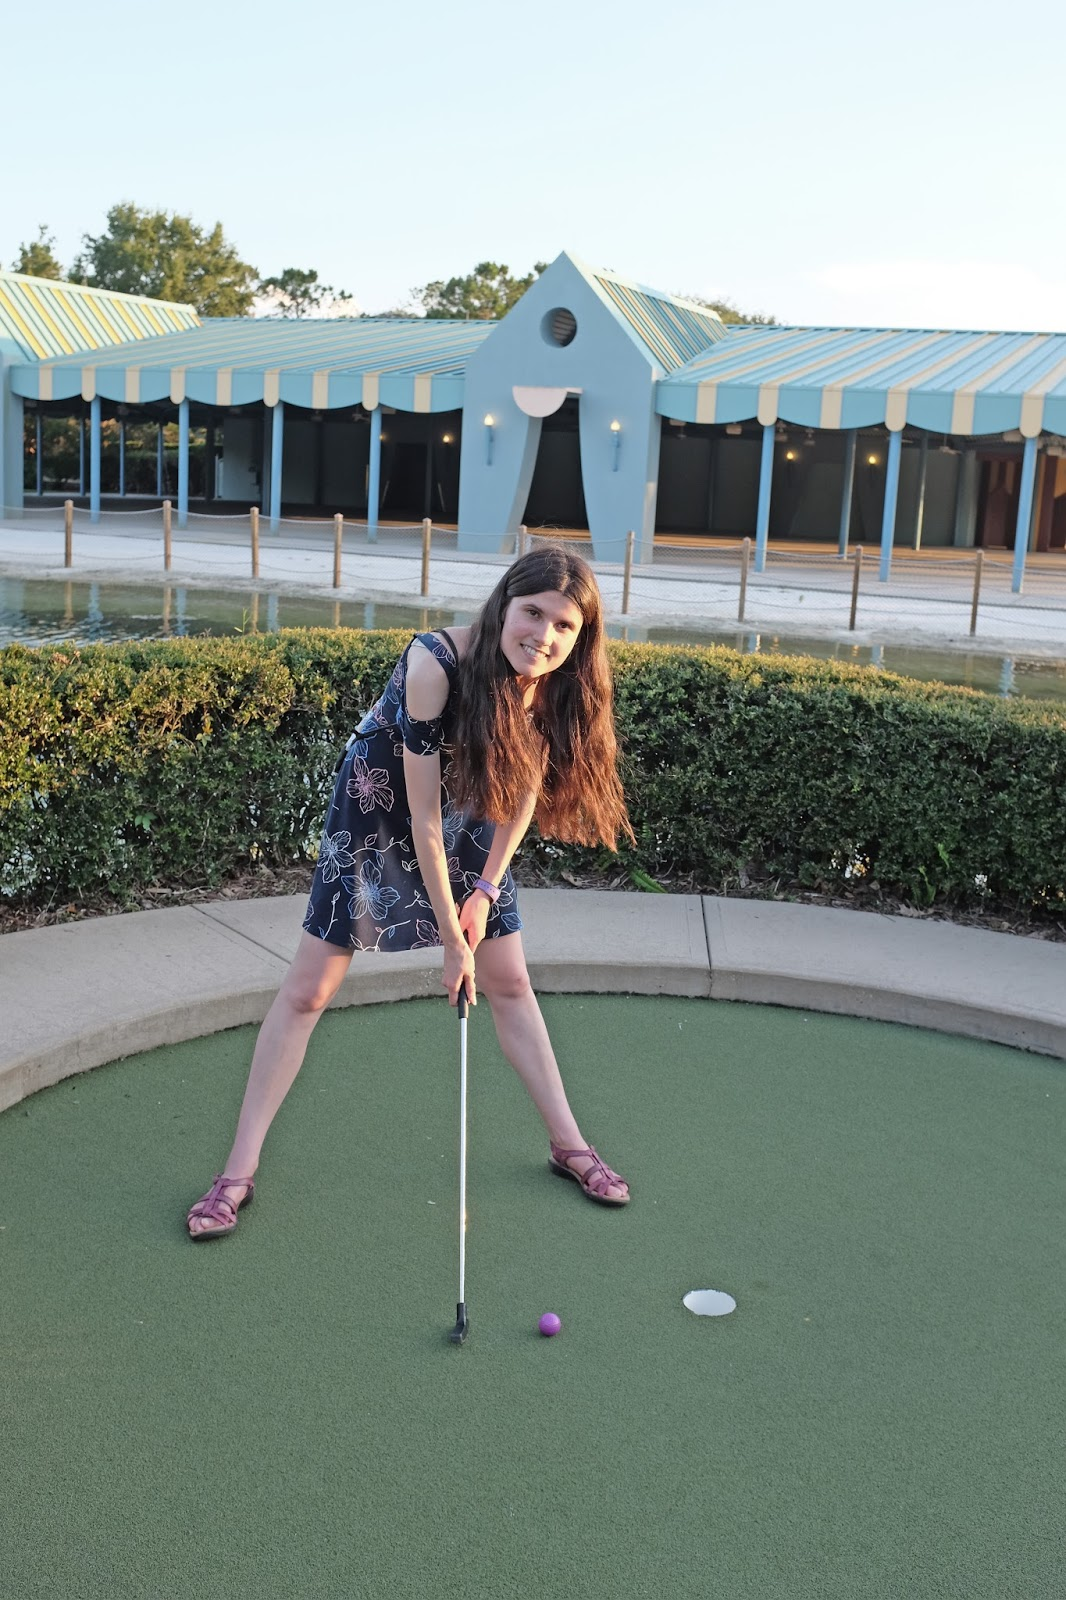 Miniature golf at Walt Disney World